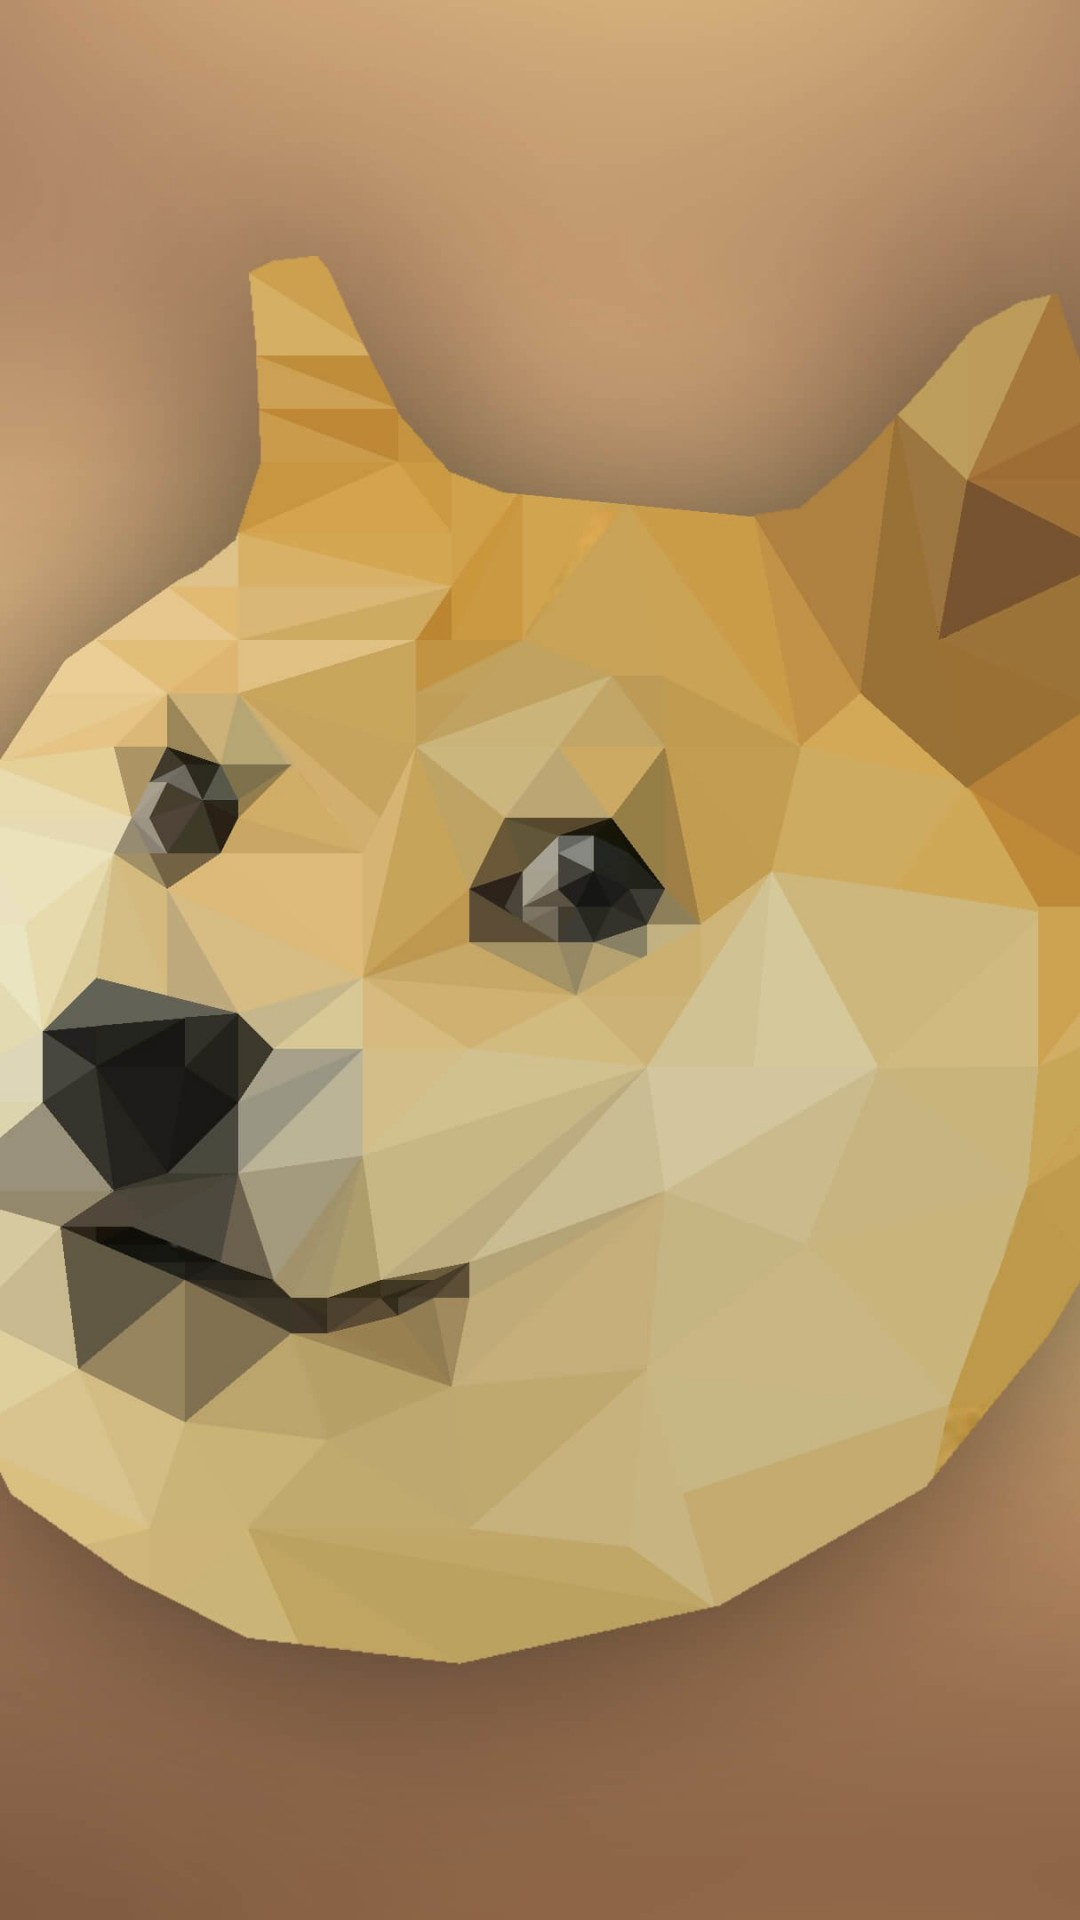 Low Poly Doge Wallpaper for SAMSUNG Galaxy Note 3